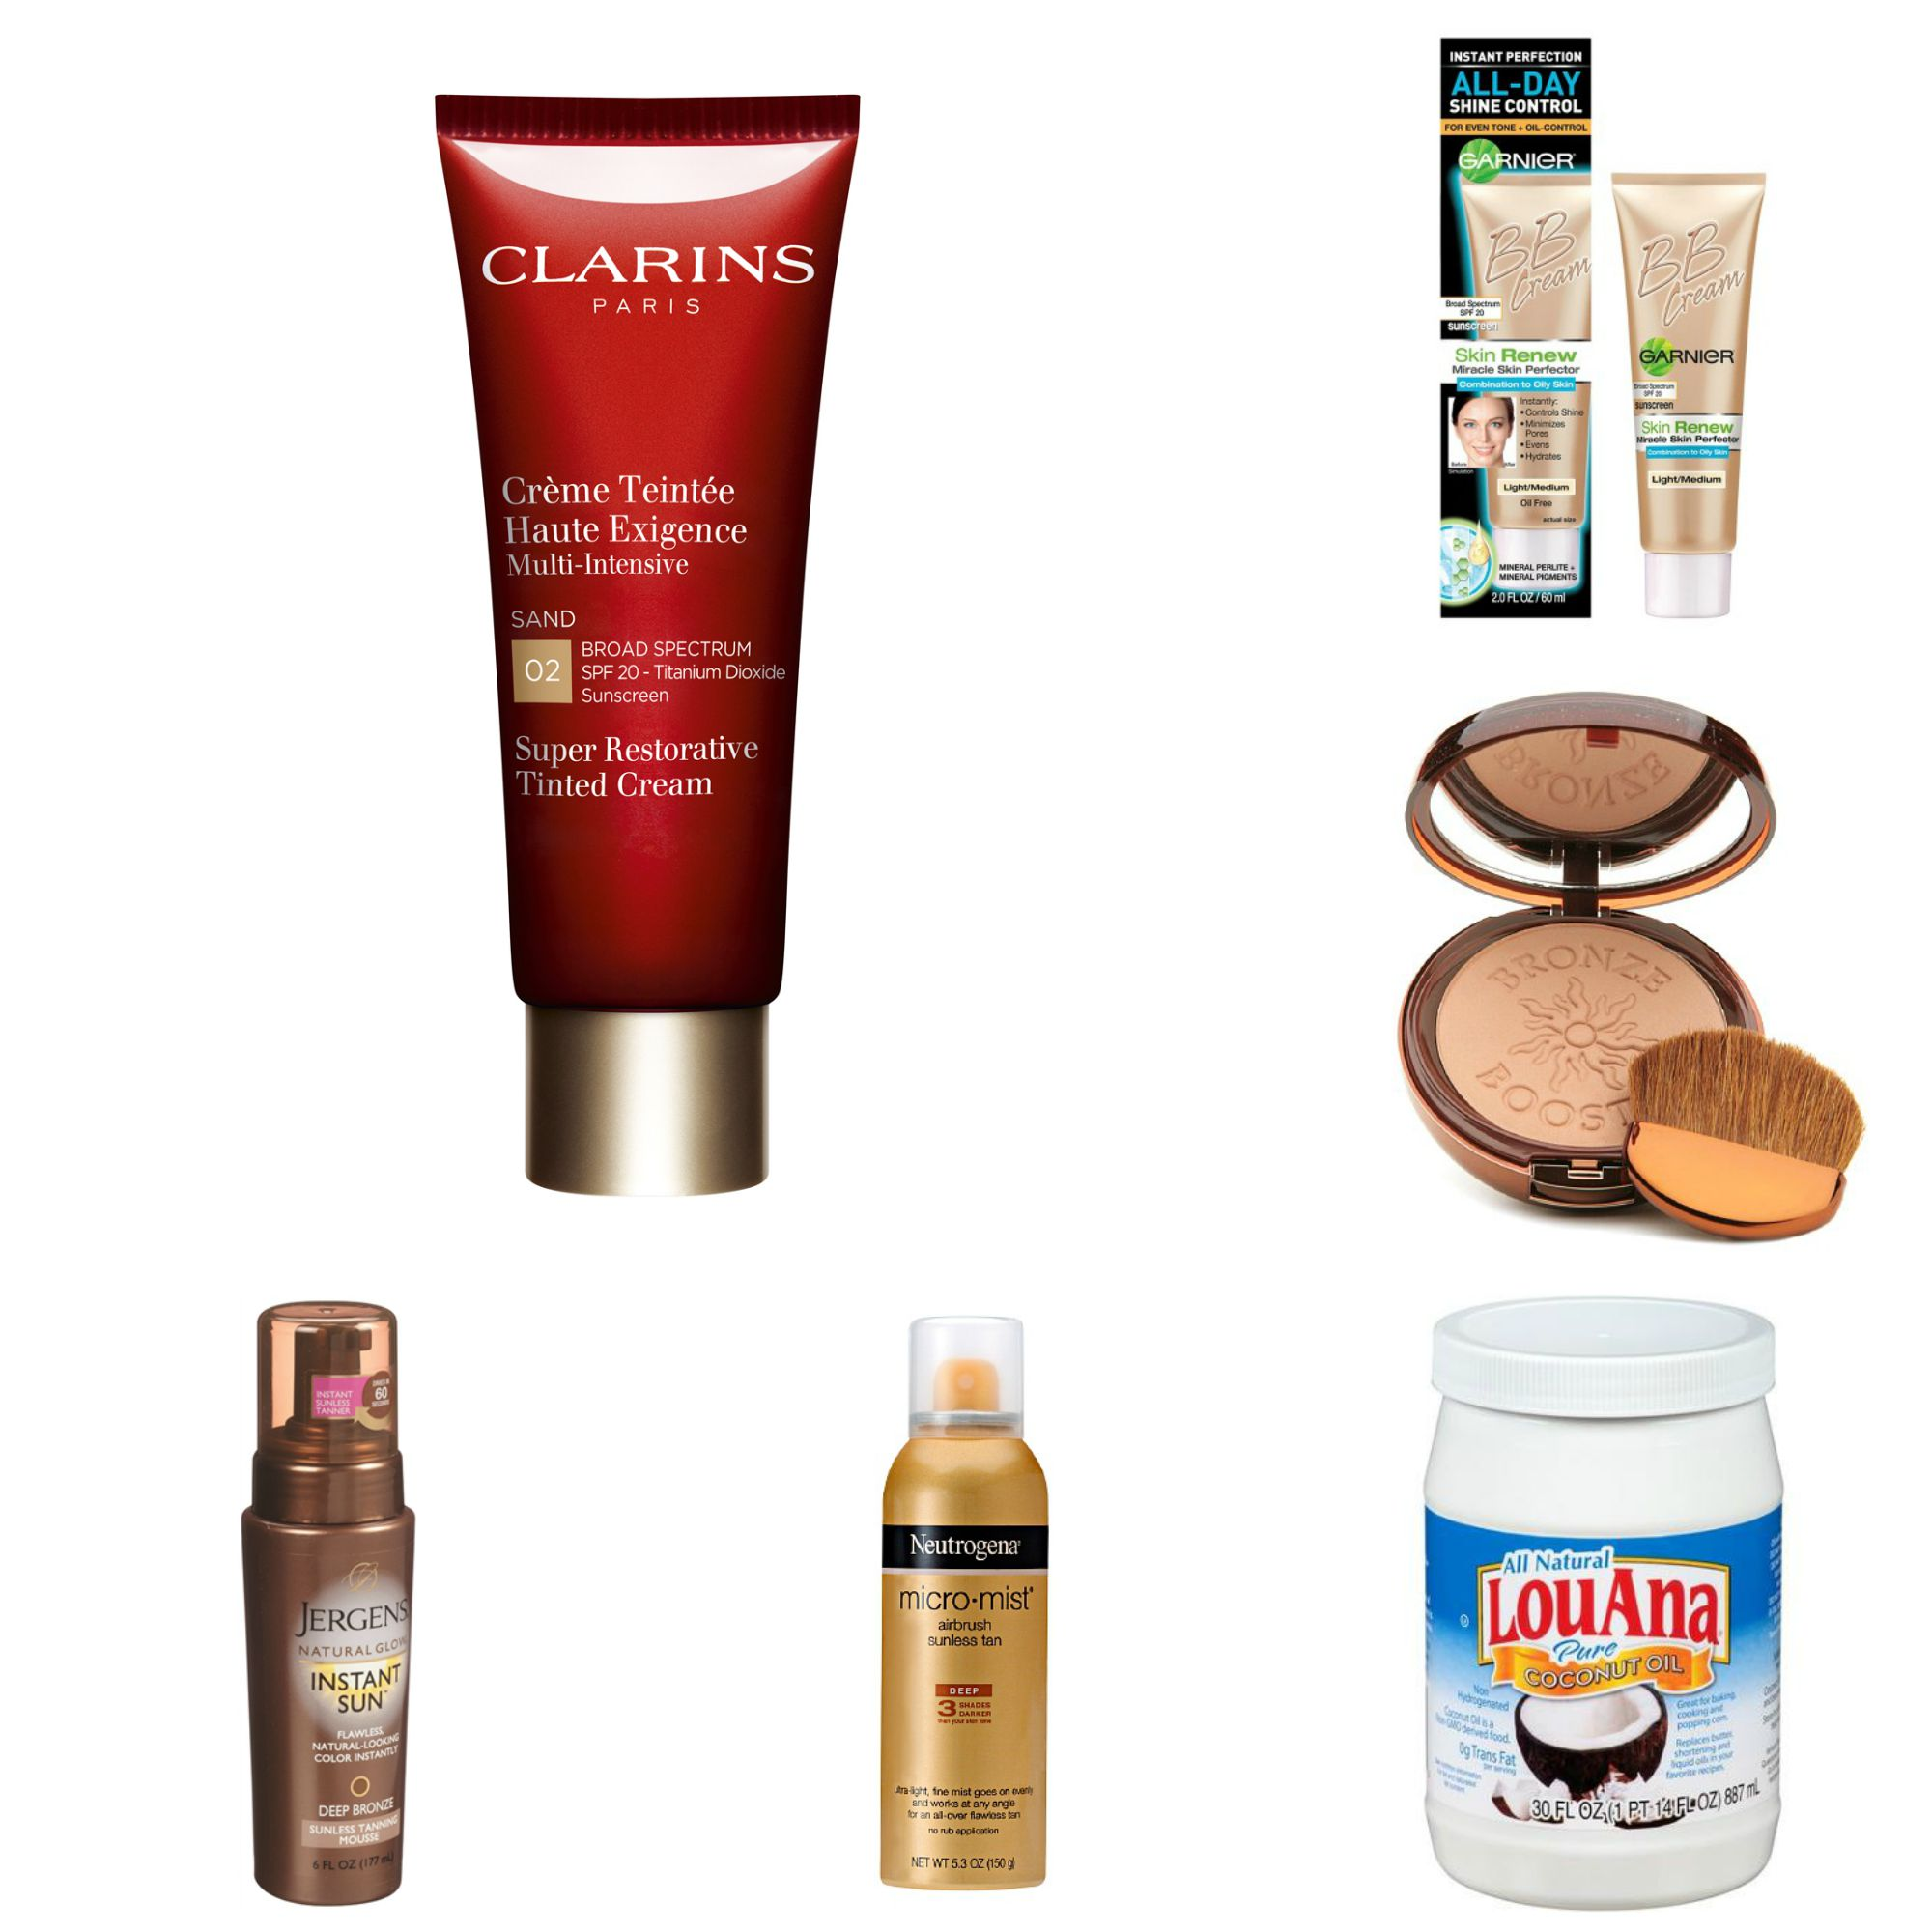 How to get that sun-kissed goddess look without stepping out into the sun.Images from upper left to bottom right: Clarins teint gel,  Garnier bb creme ,  Rimmel bronzer , J ergens foam instant tan ,  Neutrogena Micro-mist  self tanner,  LouAna coconut oil.